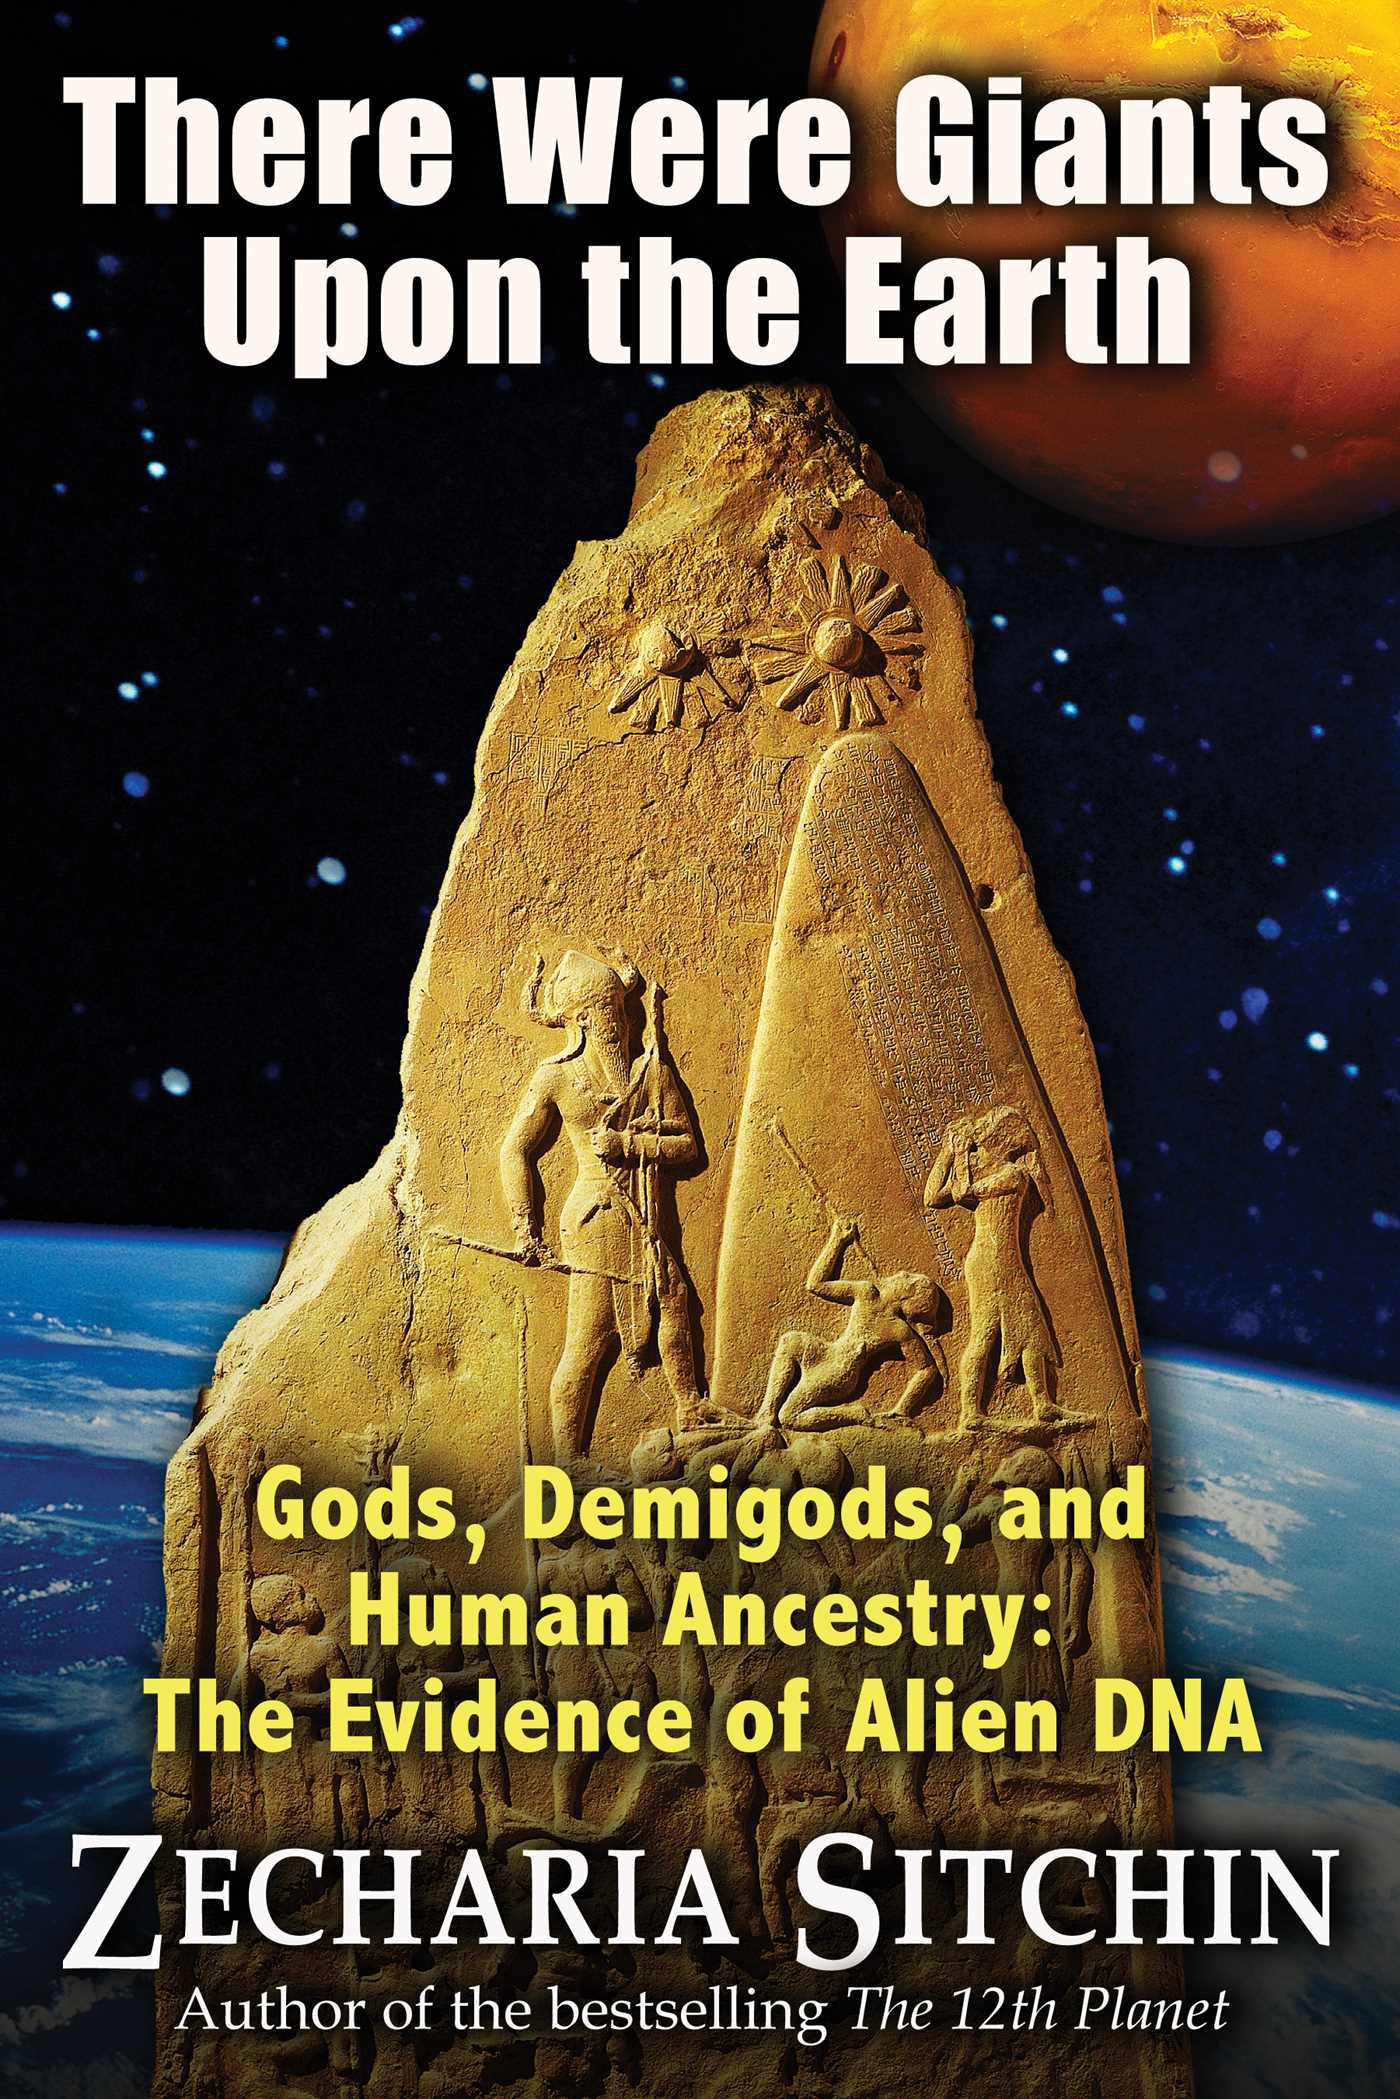 There were giants upon the earth 9781591431213 hr